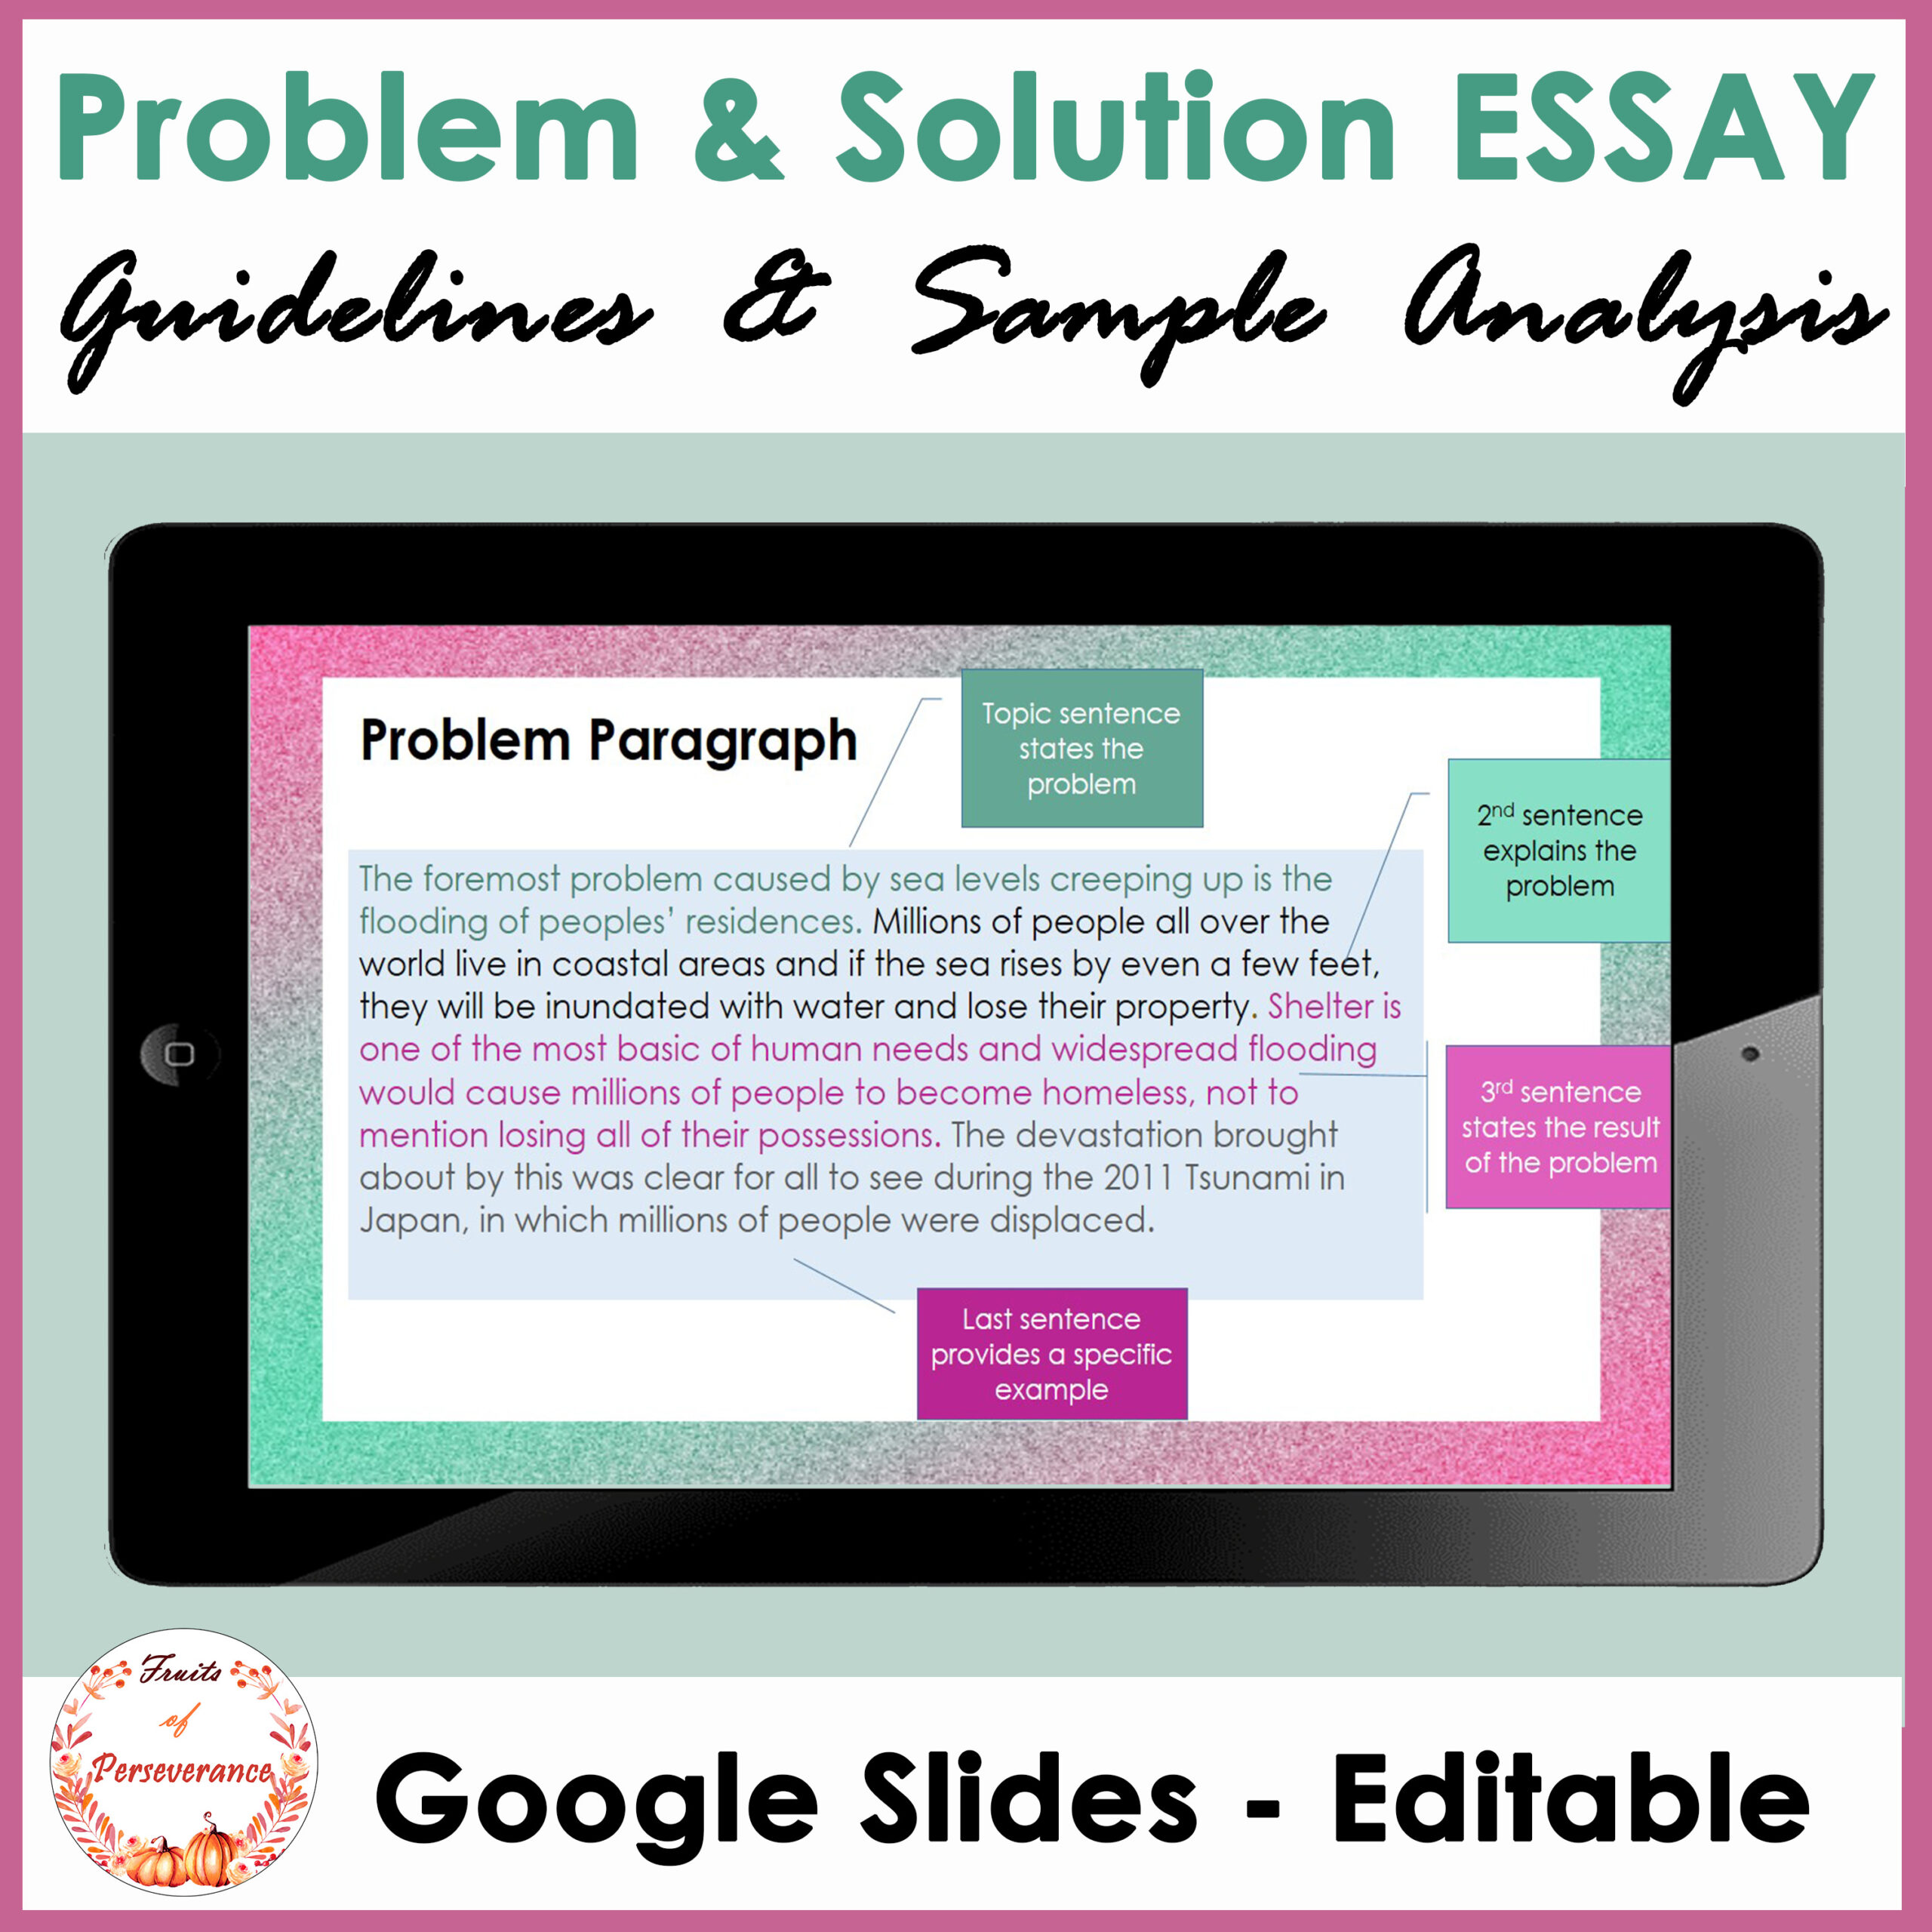 Problem and Solution Essay Writing Guidelines